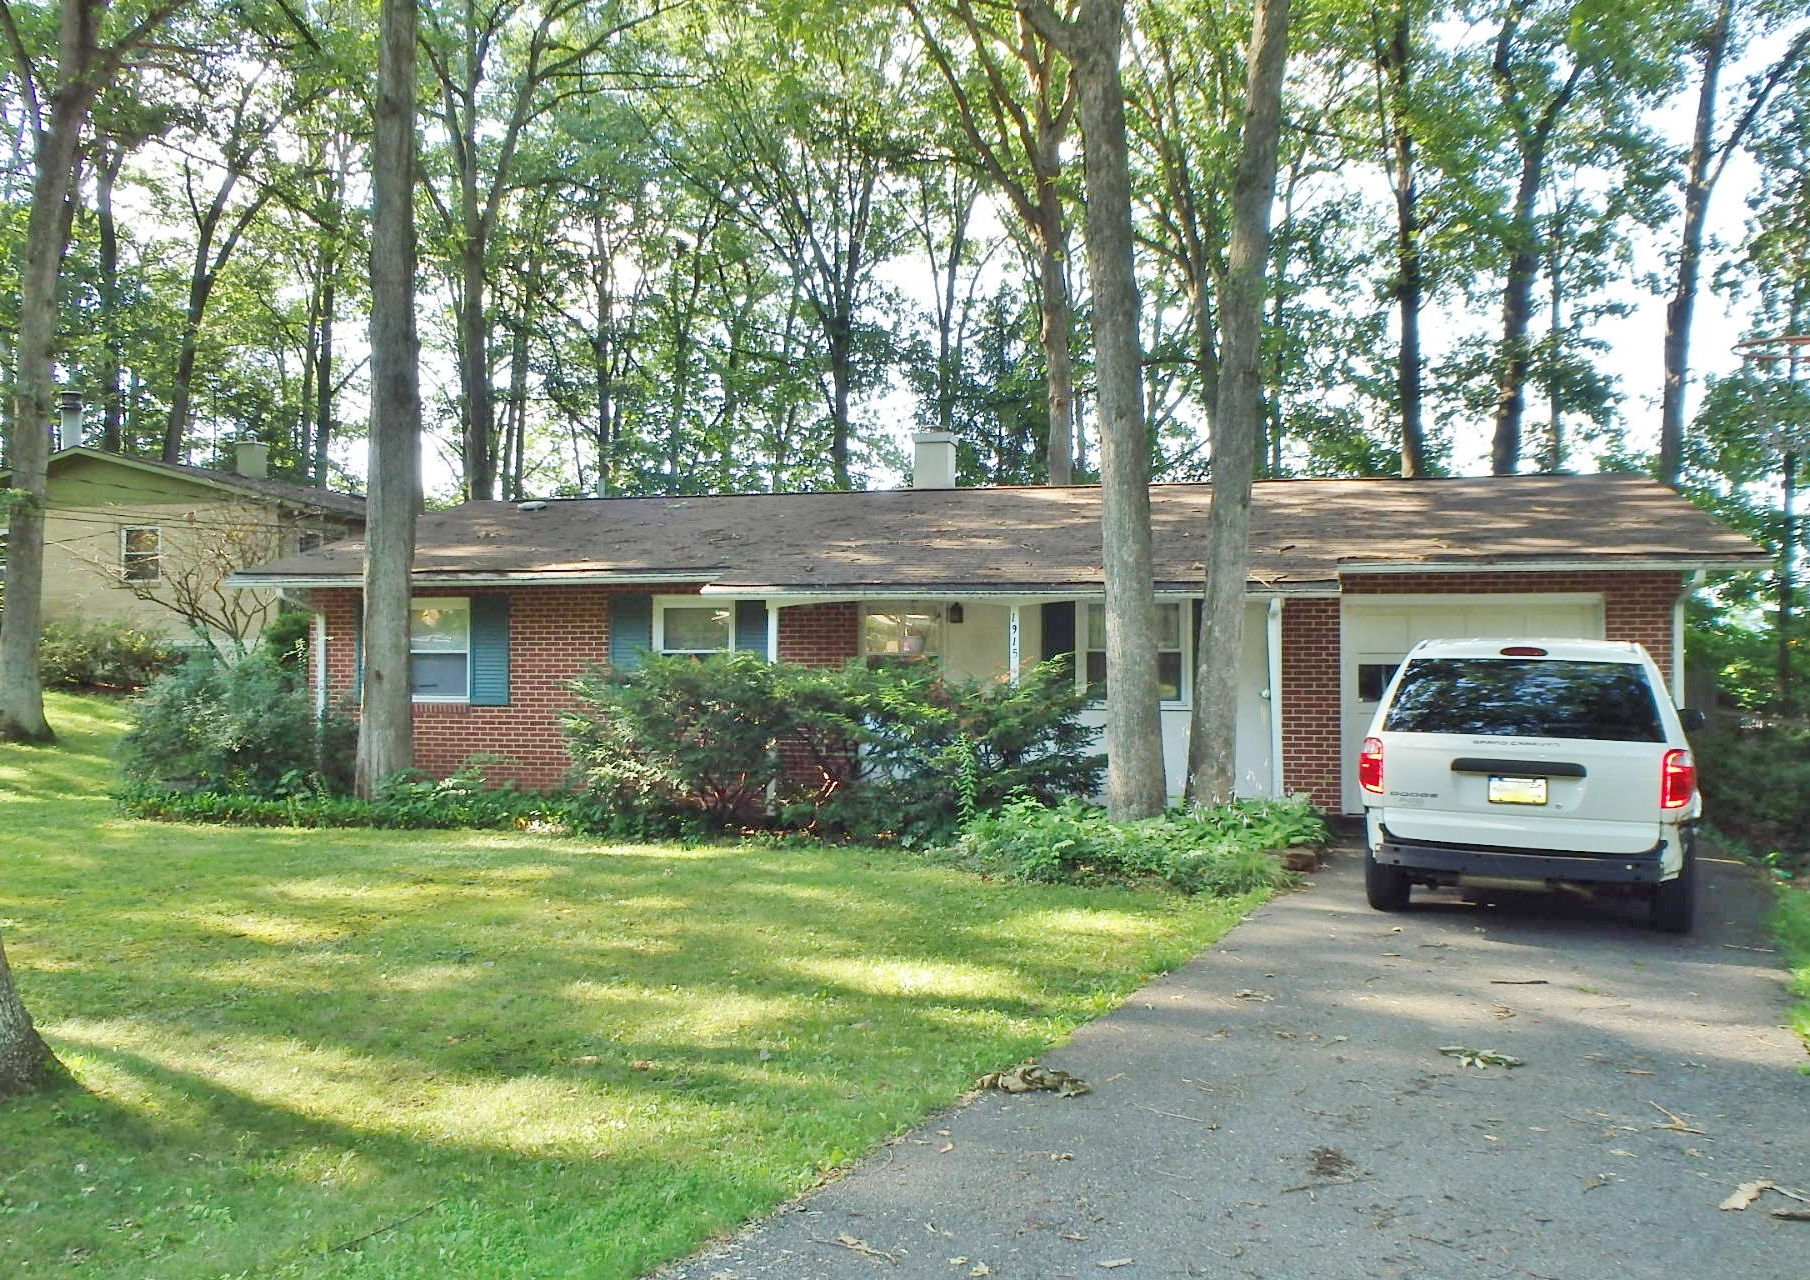 Featured photo of the 3-bedroom house for rent at 1915 N. Oak Lane, State College PA.